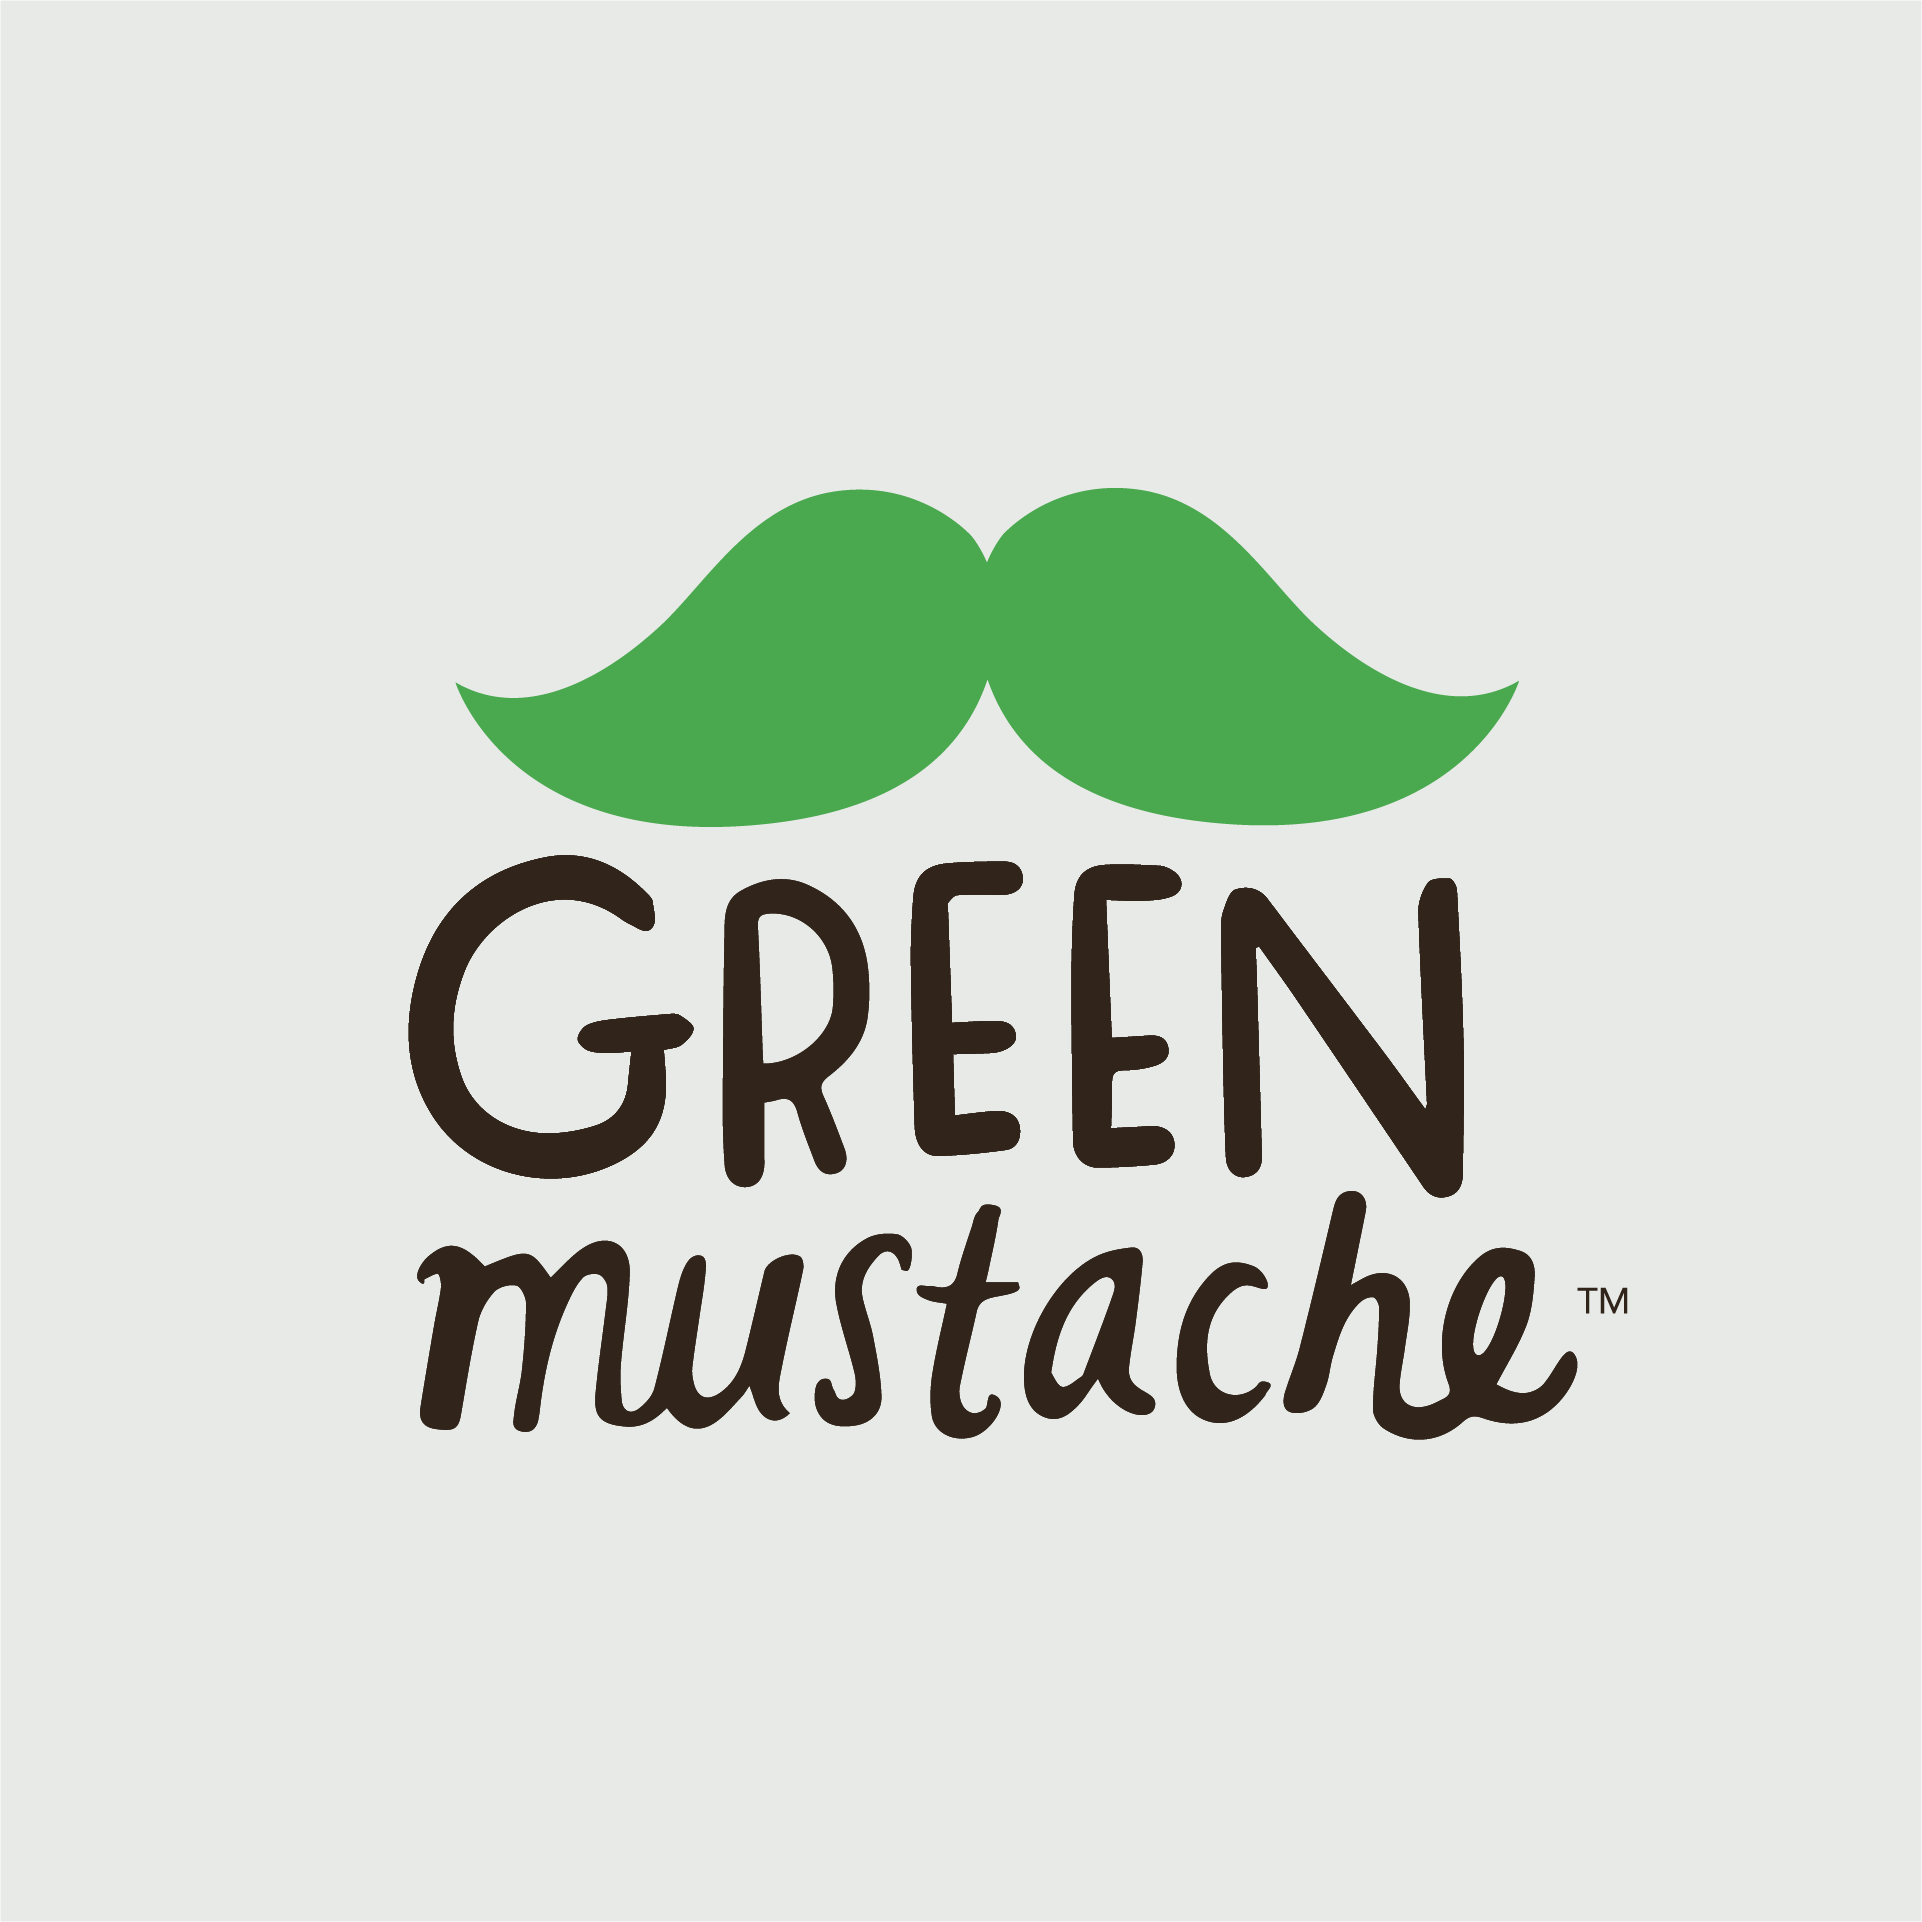 green mustache logo by motto